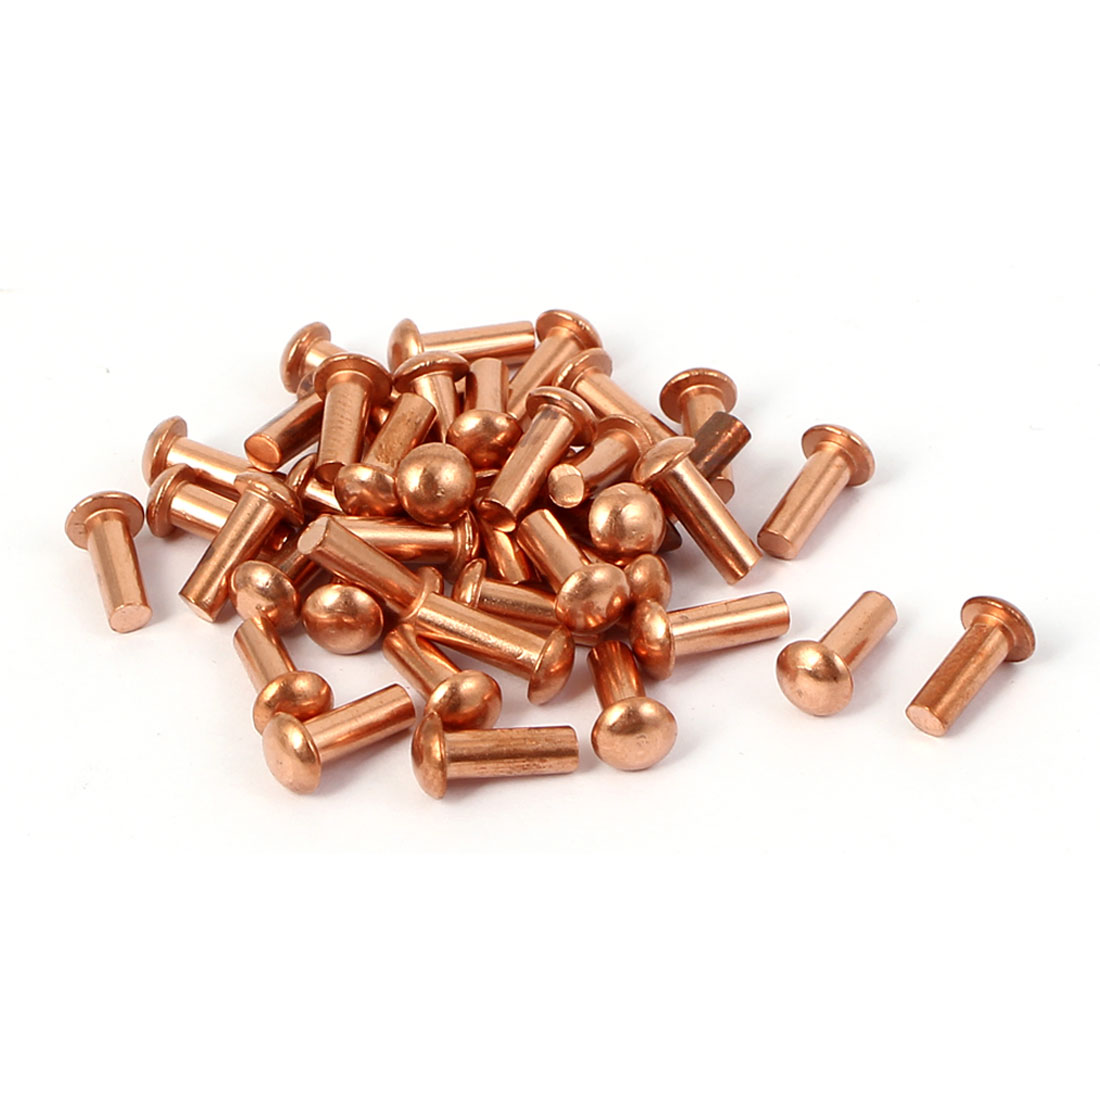 3mm x 8mm Round Shaft Copper Solid Rivets Fasteners Hardware Gold Tone 40 Pcs